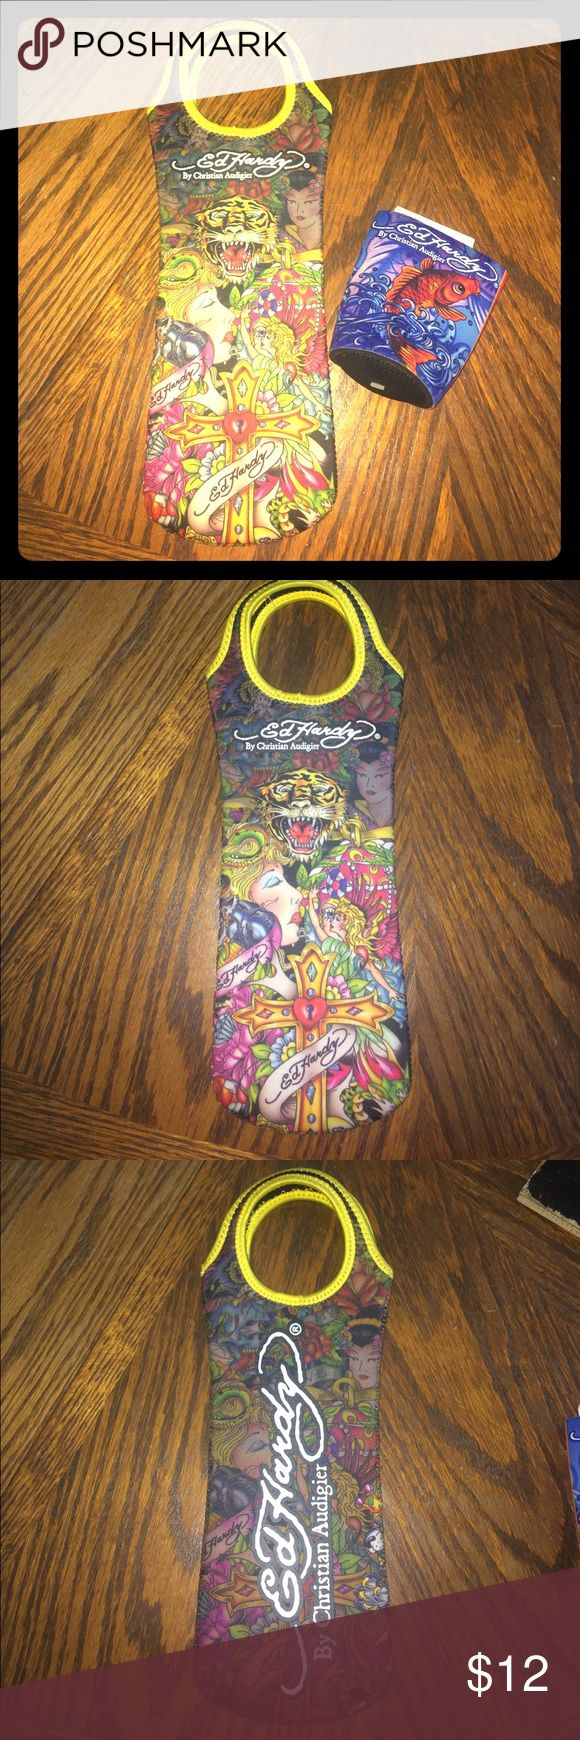 🚨CLOSET CLEAROUT🚨 Ed Hardy wine bag and can cozy New condition. Can cozy is NWT. Ed Hardy Other